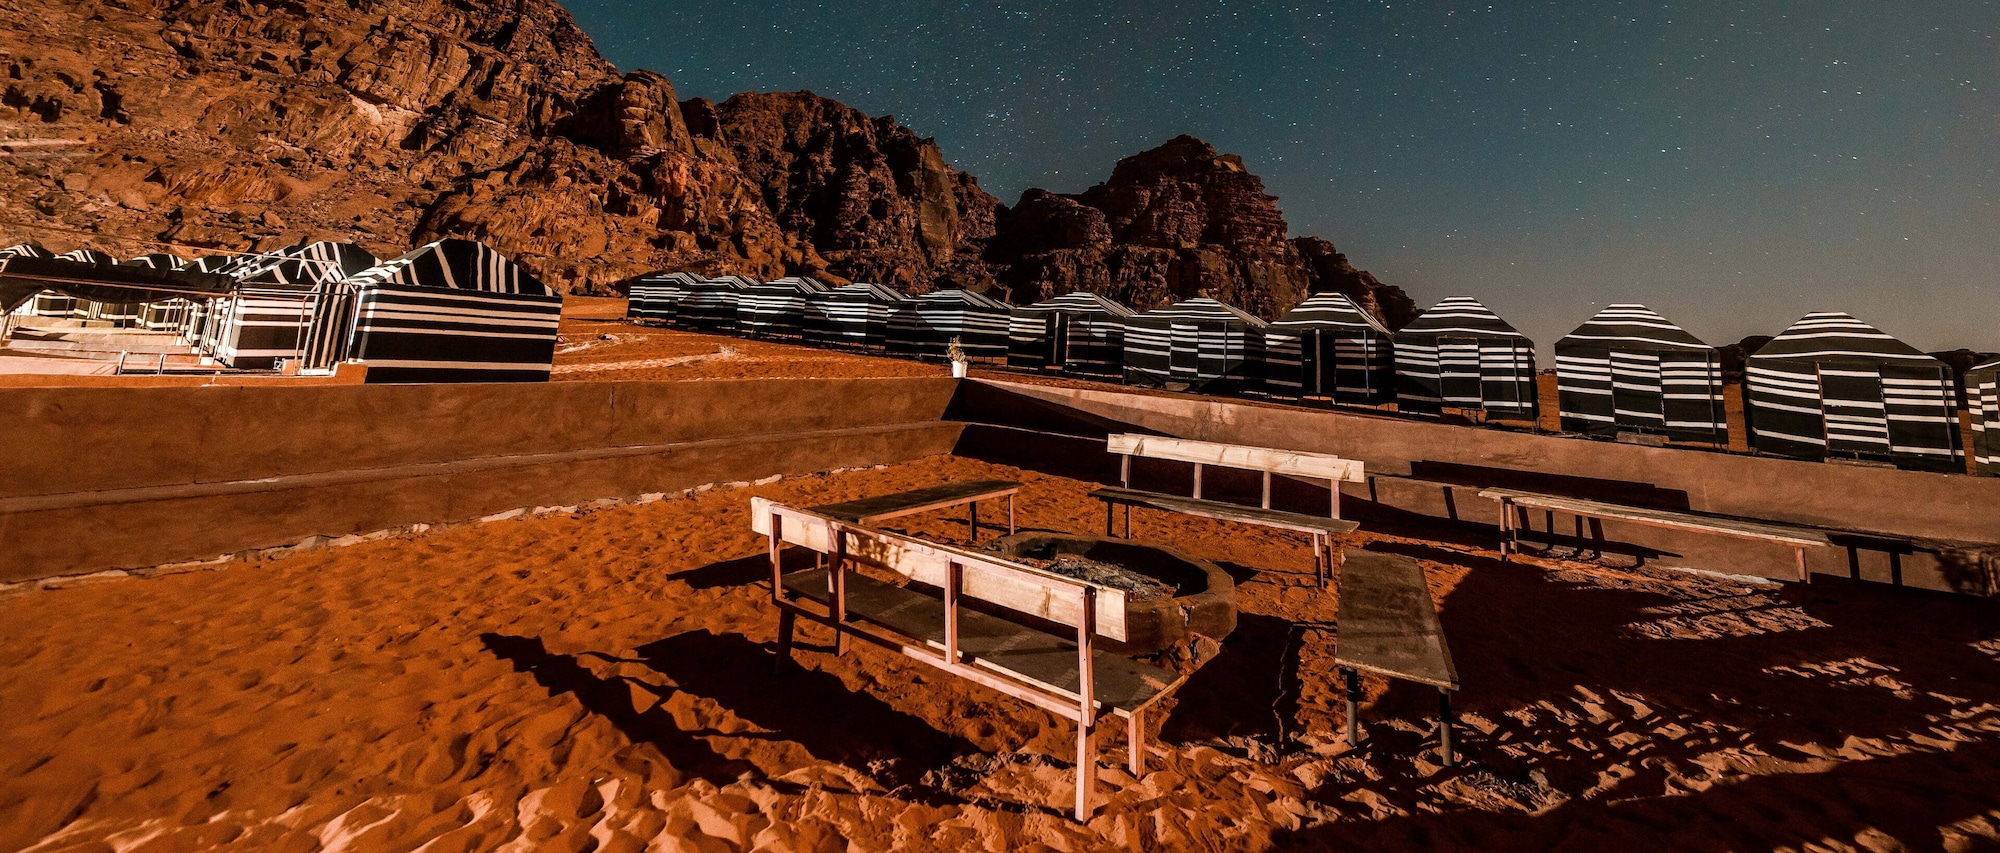 Desert Moon Camp, Aqaba